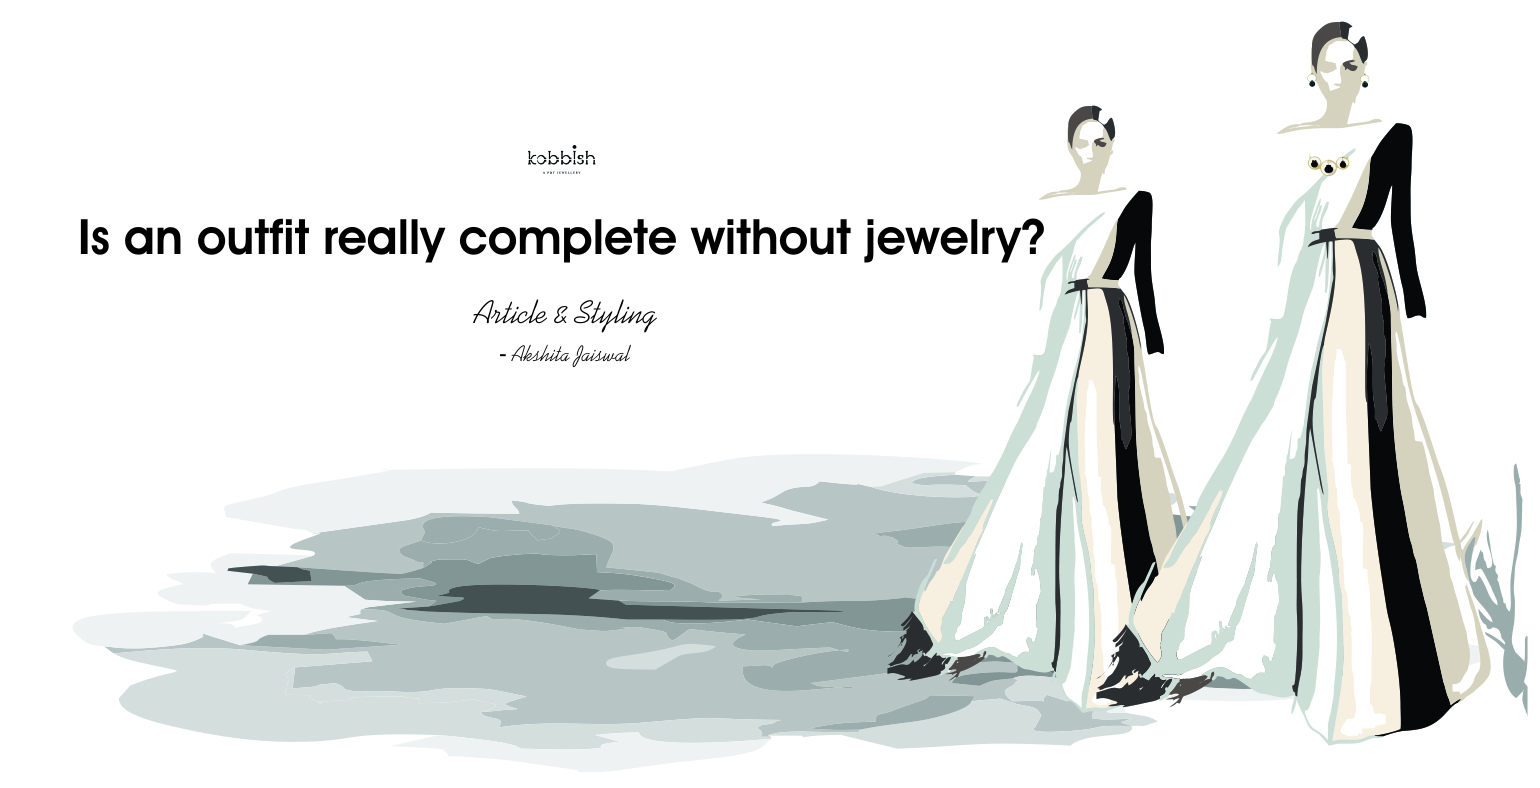 Is an outfit really complete without jewelry?